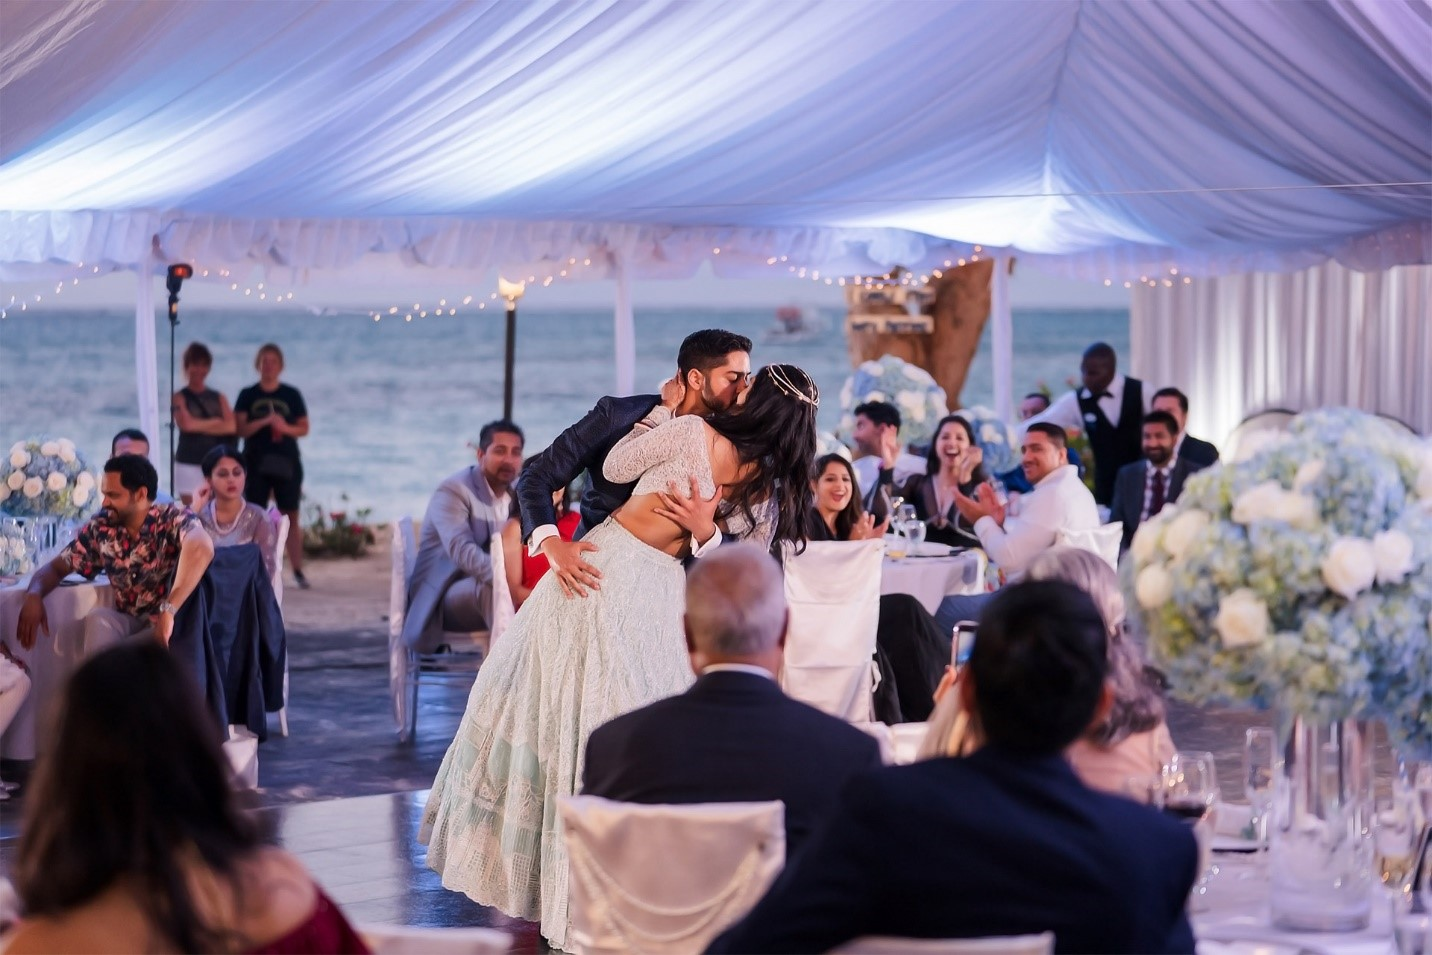 Bride and Groom romantic first dance- South Asian Wedding at Beaches Turks and Caicos